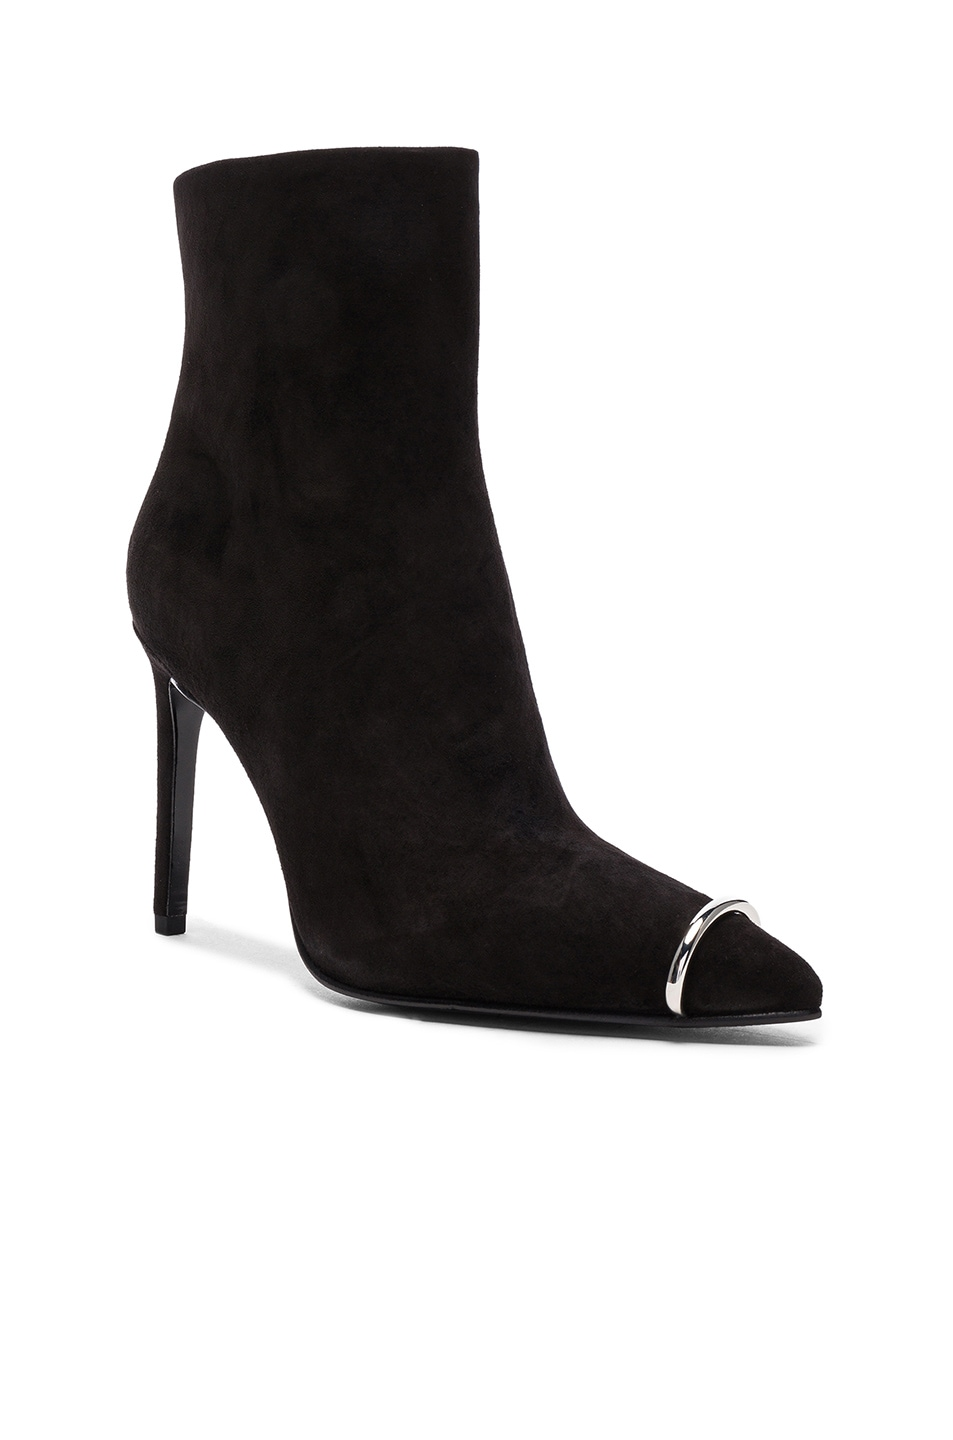 Image 2 of Alexander Wang Suede Kinga Boots in Black Suede